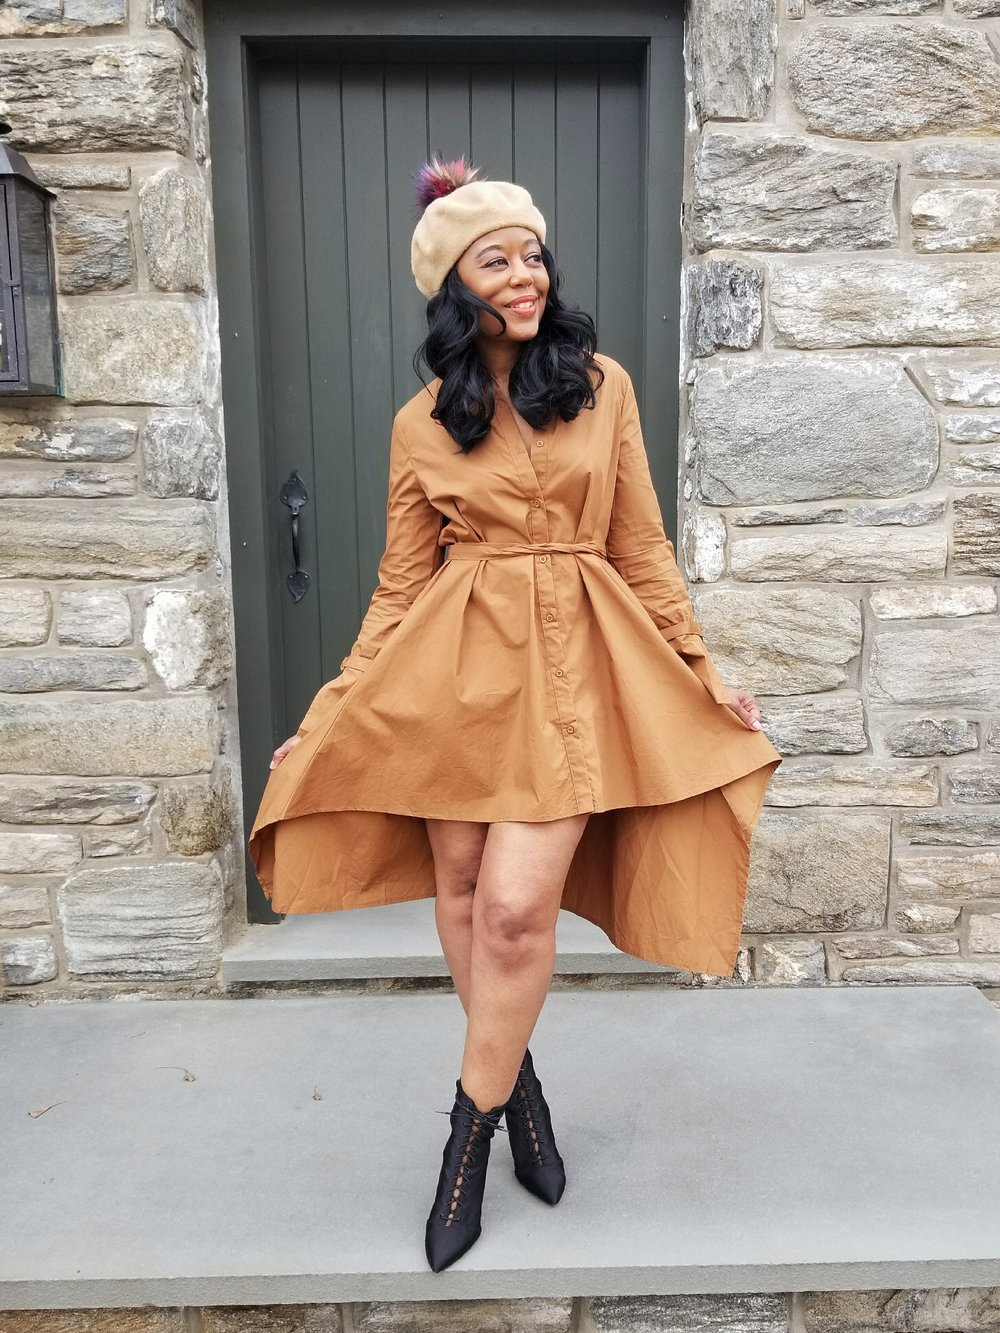 Dress( Eve Lawrence Boutique ) | Booties( Chicopolitan ) | Beret(Forever21) | Sandals(old)